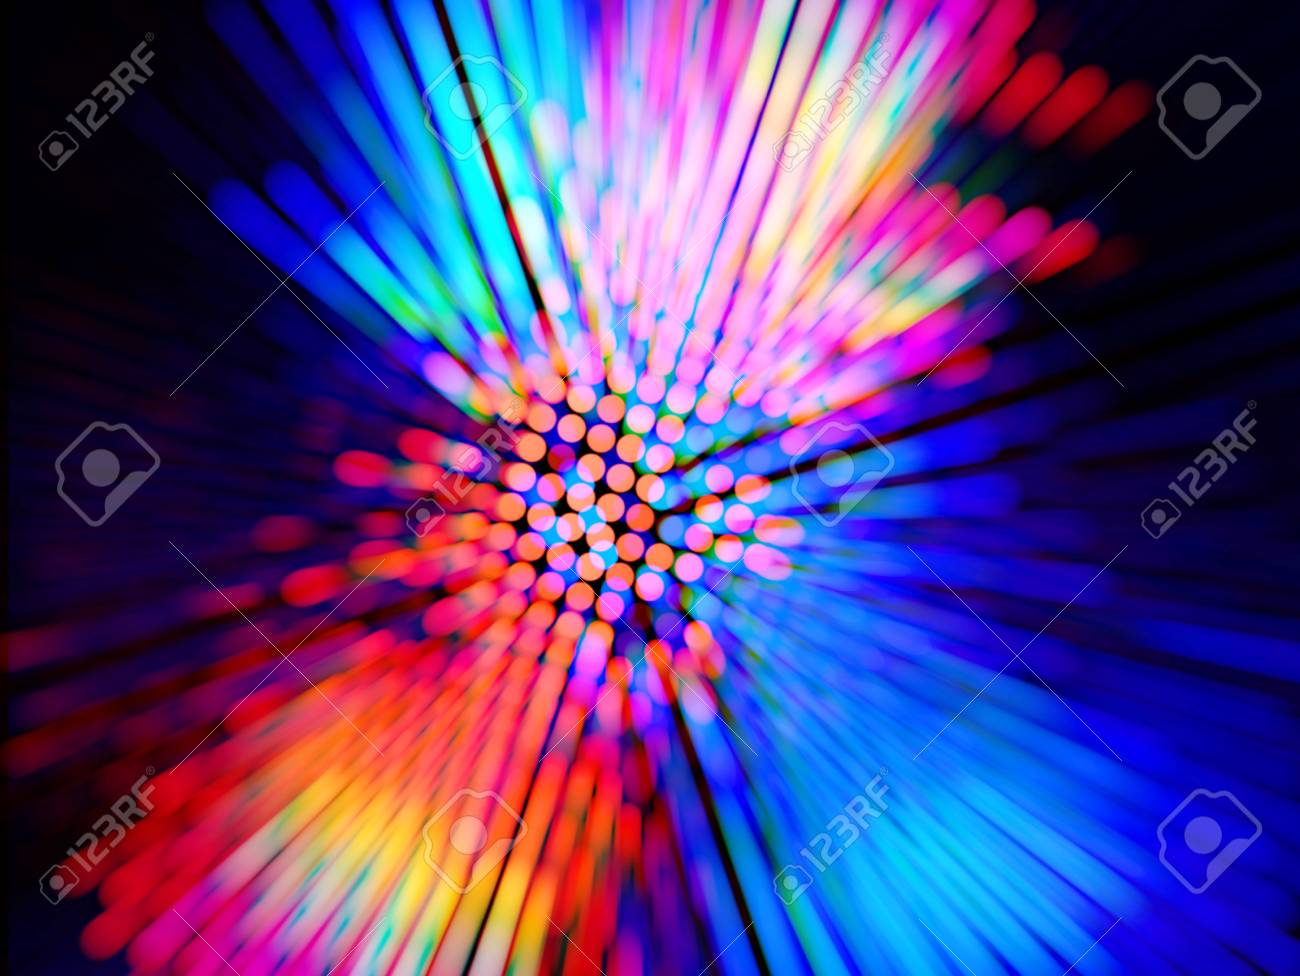 colorful background for disco posters - 90236582